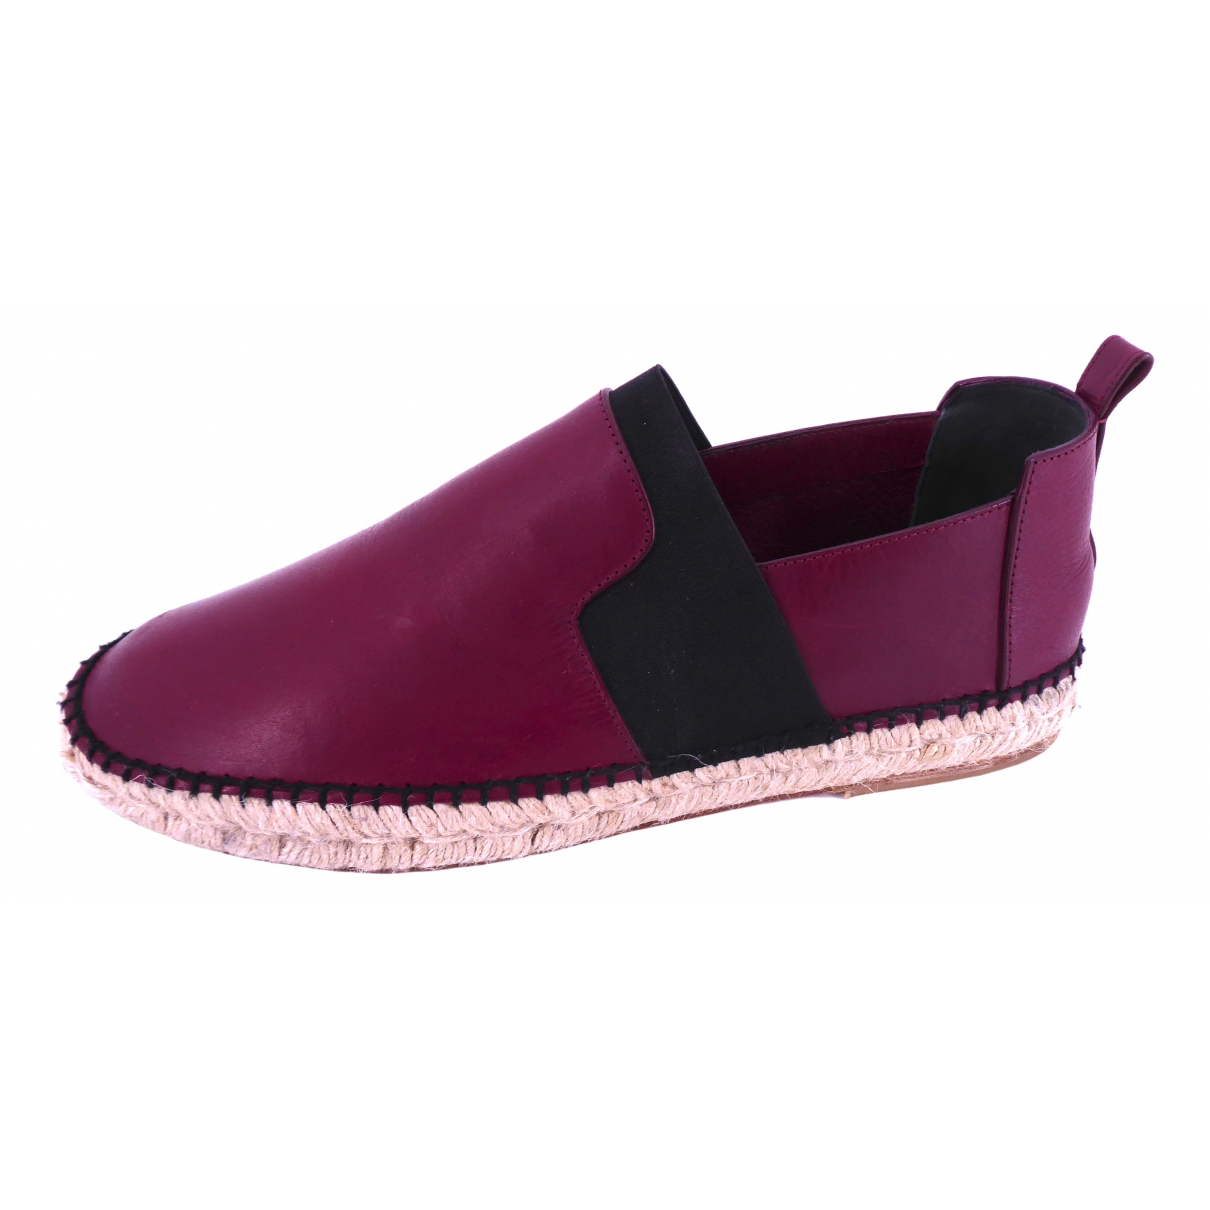 Balenciaga \N Burgundy Leather Espadrilles for Men 44 EU